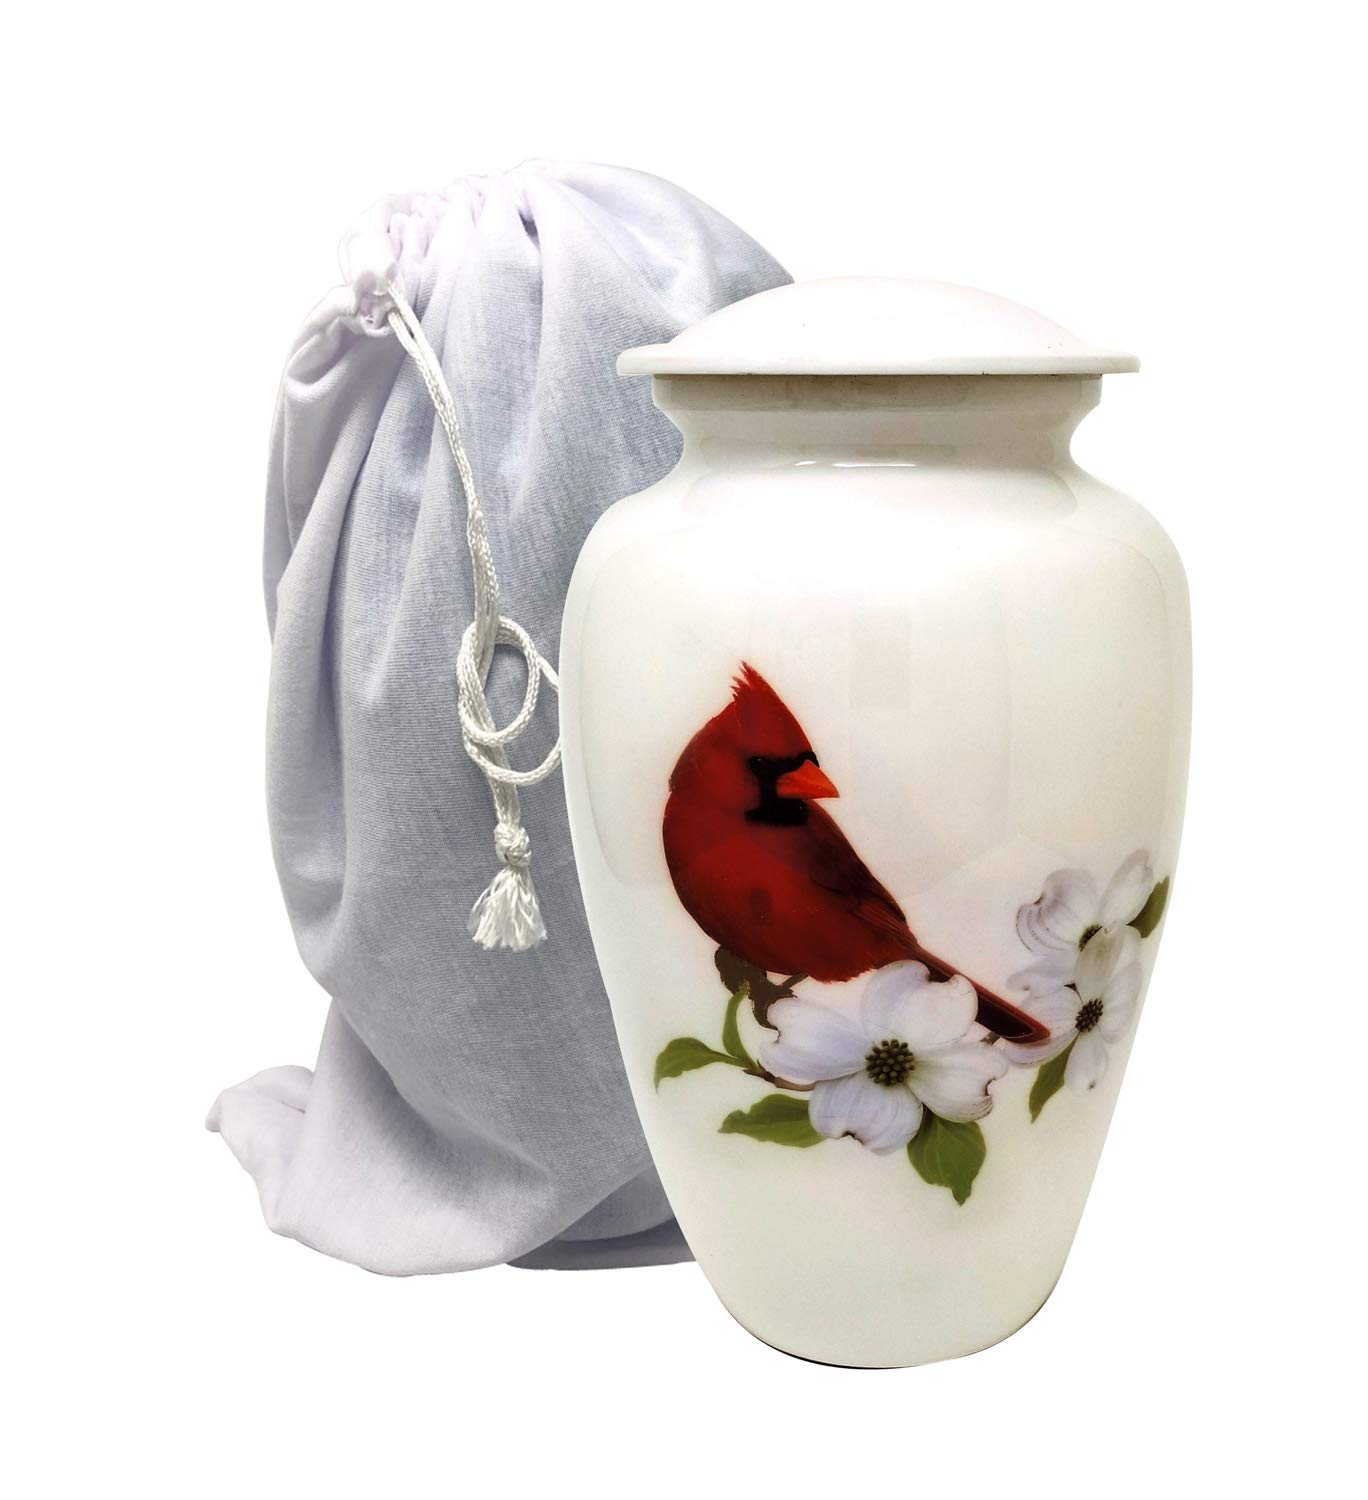 LiveUrns Cremation Urn for Adult Ashes - Cardinal Bird Cremation Urns for Human Ashes - Large Metal Hand Painted Burial and Funeral Cremation Urn, Memorial Urn for Human Ashes - Red Solid Metal Urn